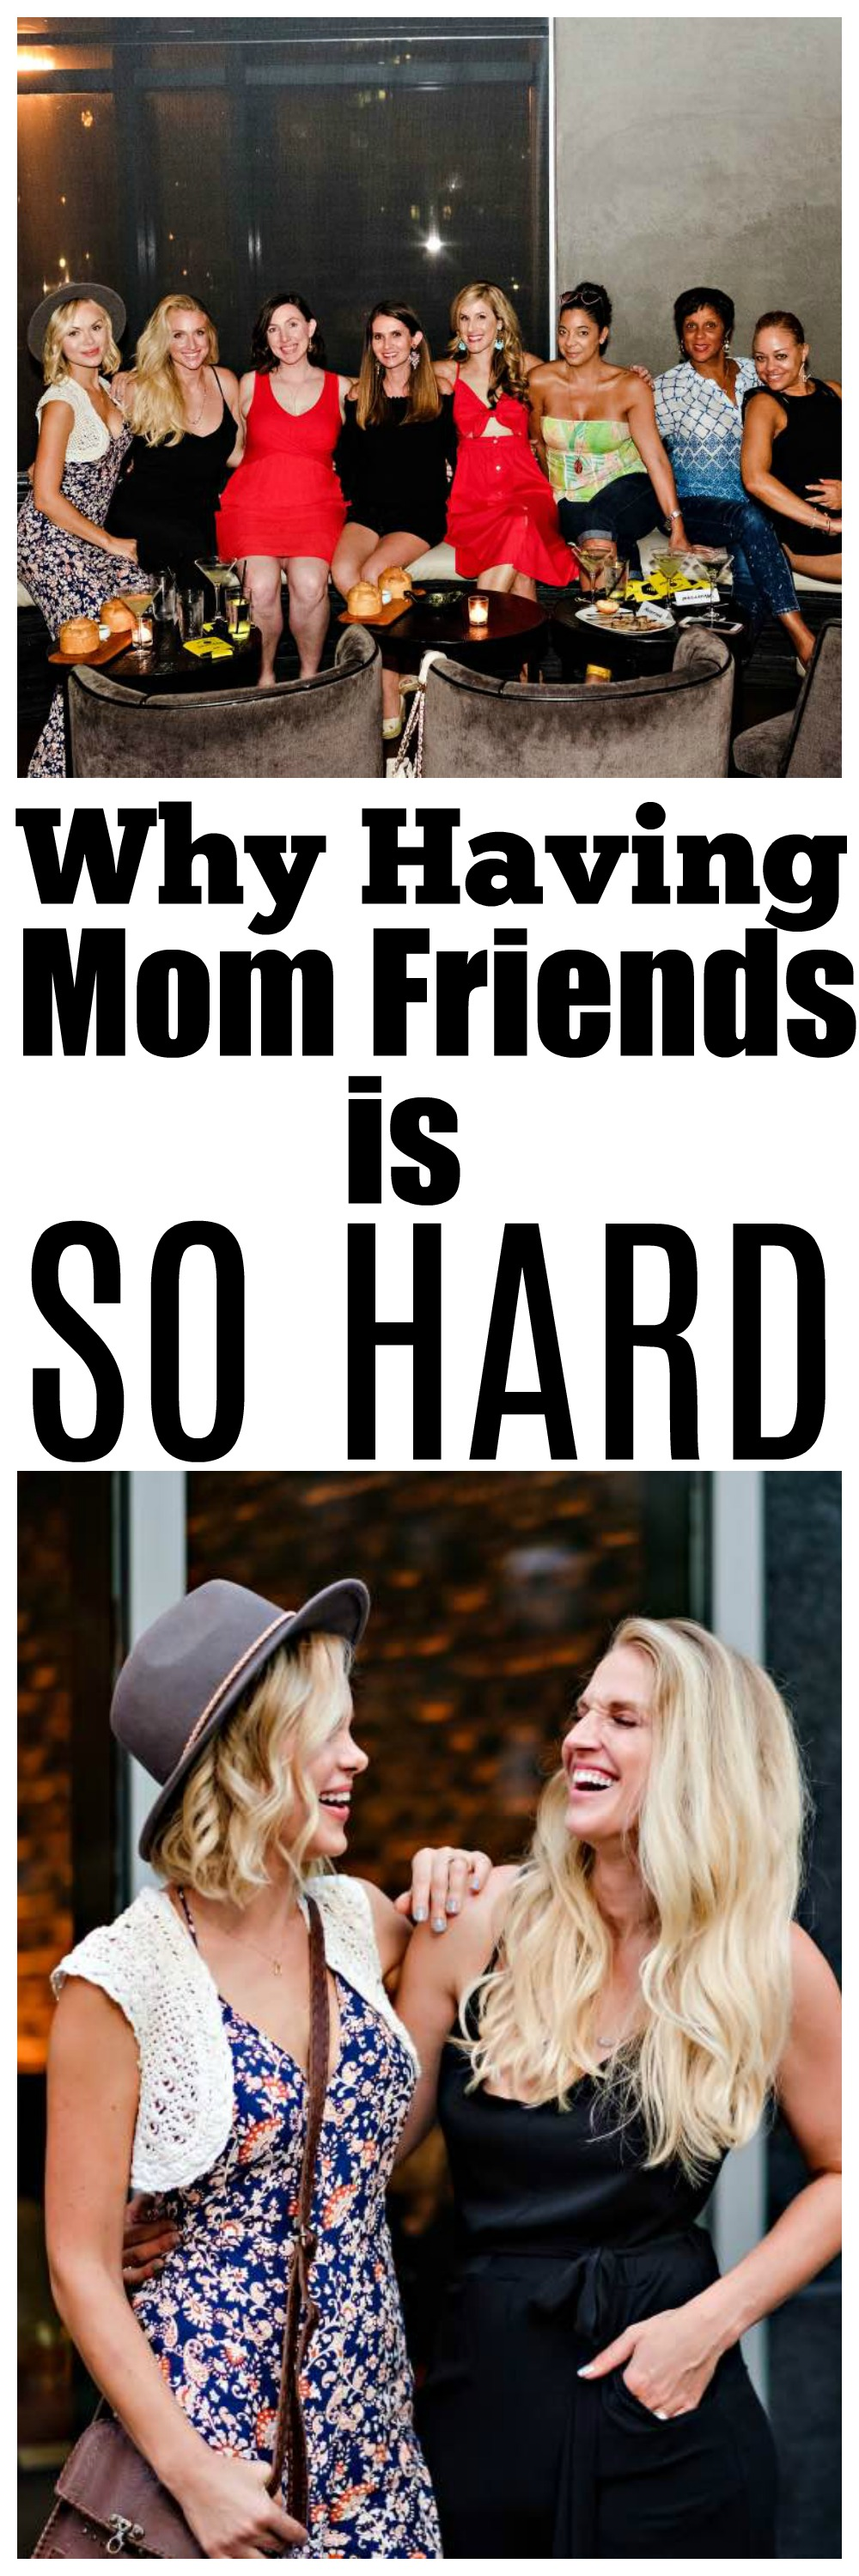 Why Making Mom Friends is So Hard by Atlanta mom blogger Happily Hughes